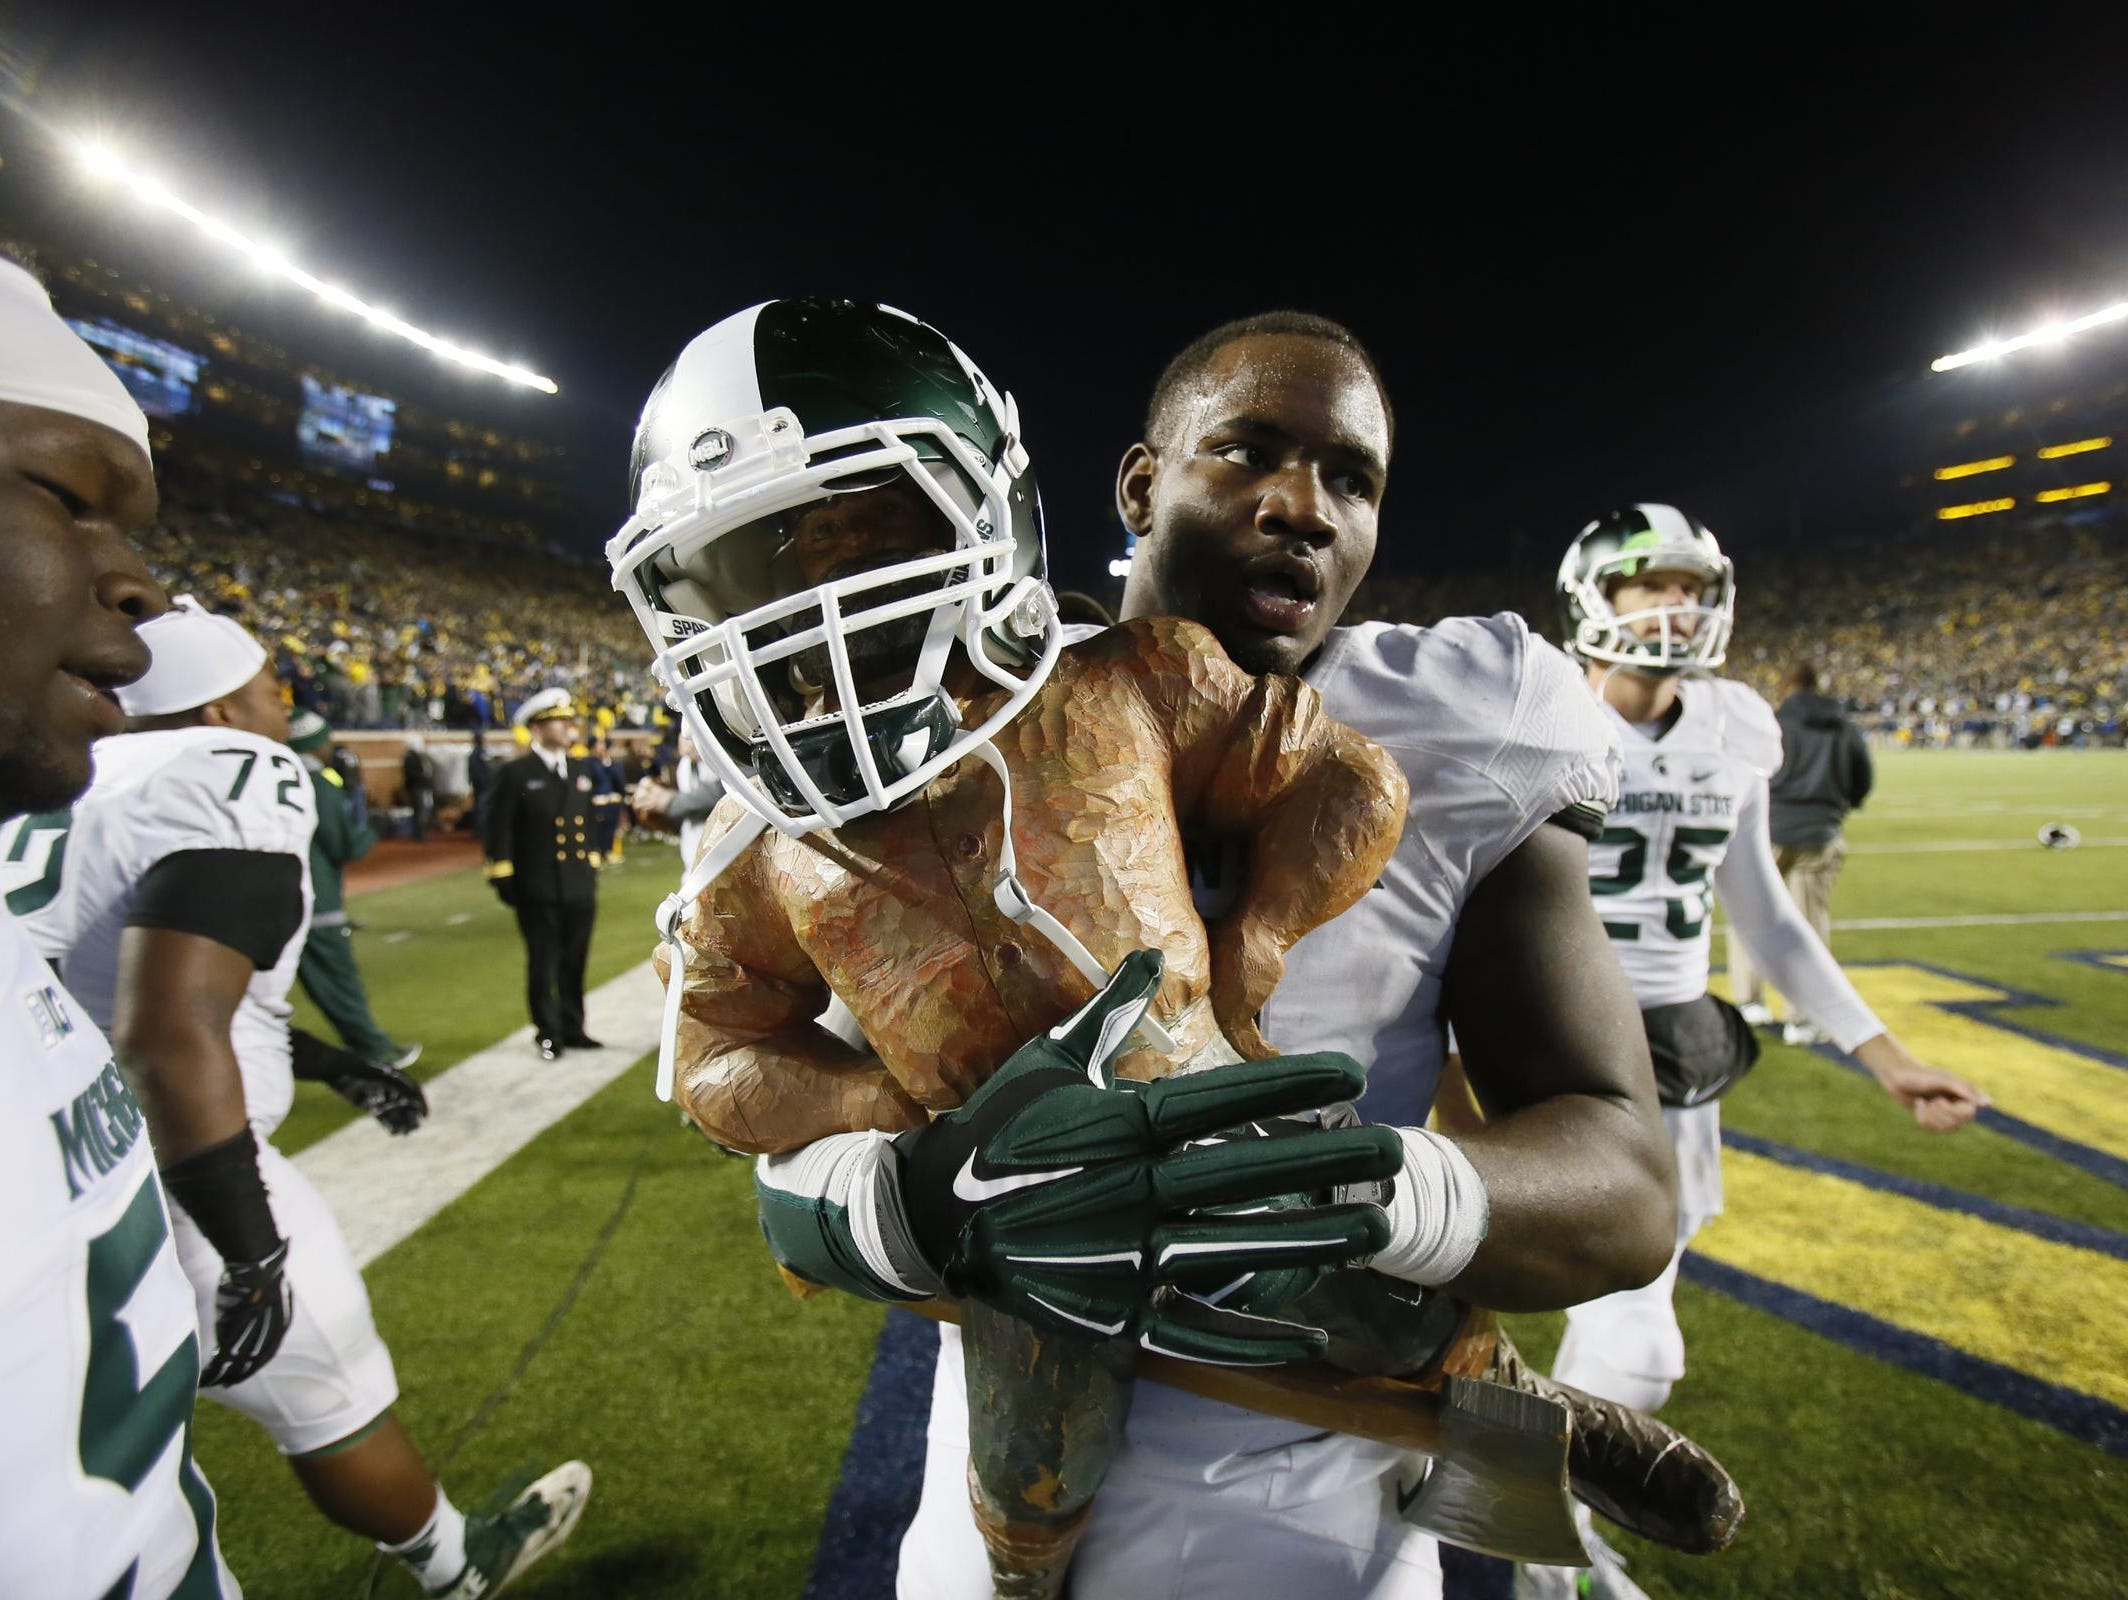 Michigan State's Lawrence Thomas carries the Paul Bunyan trophy after the Spartans' final-play 27-23 victory over U-M on Oct. 17 in Ann Arbor. Thomas was the top-ranked prospect in the state out of high school.